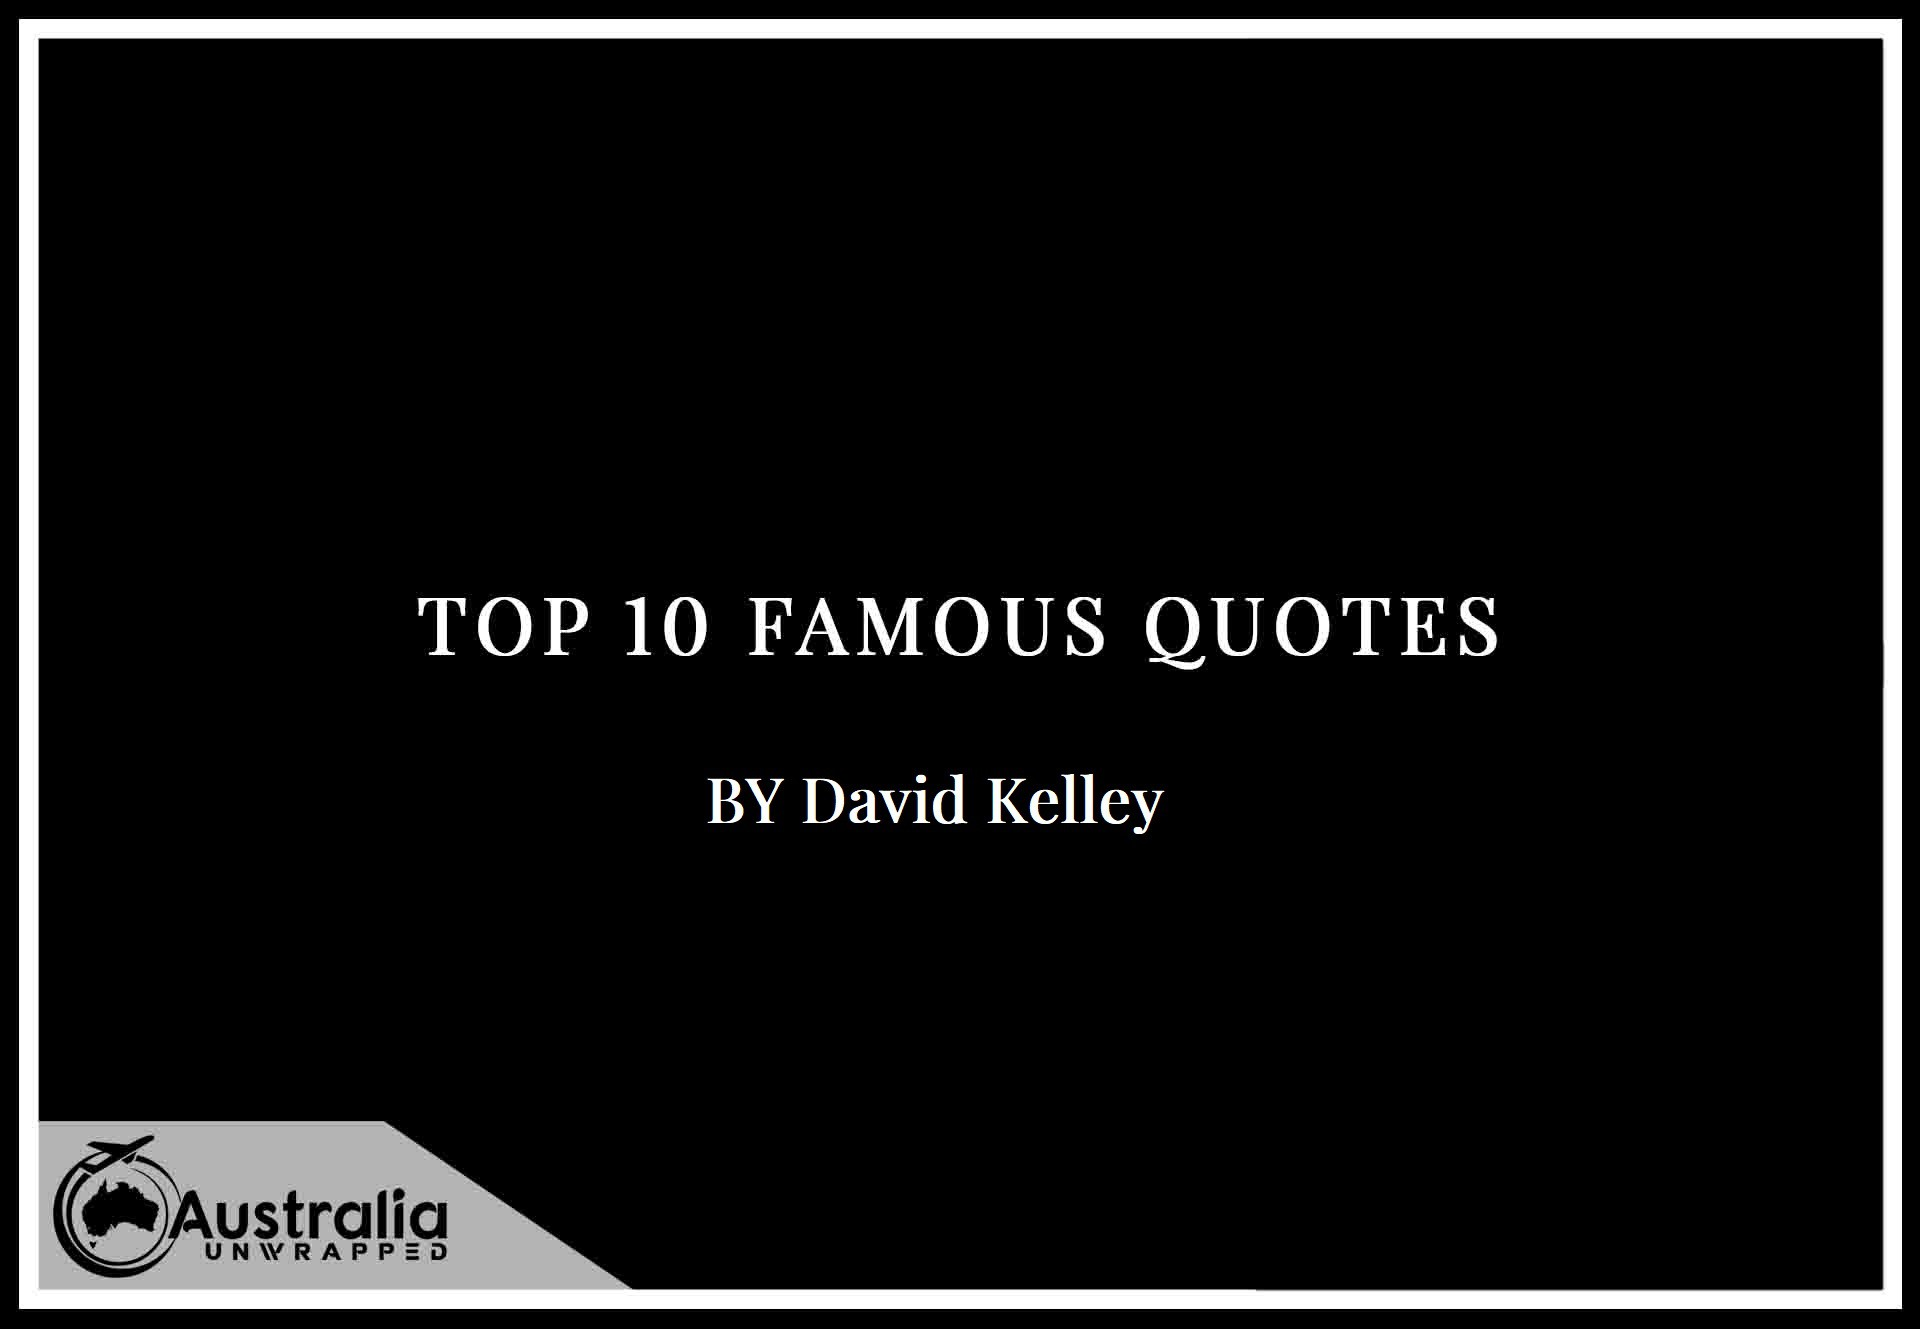 Top 10 Famous Quotes by Author David Kelley